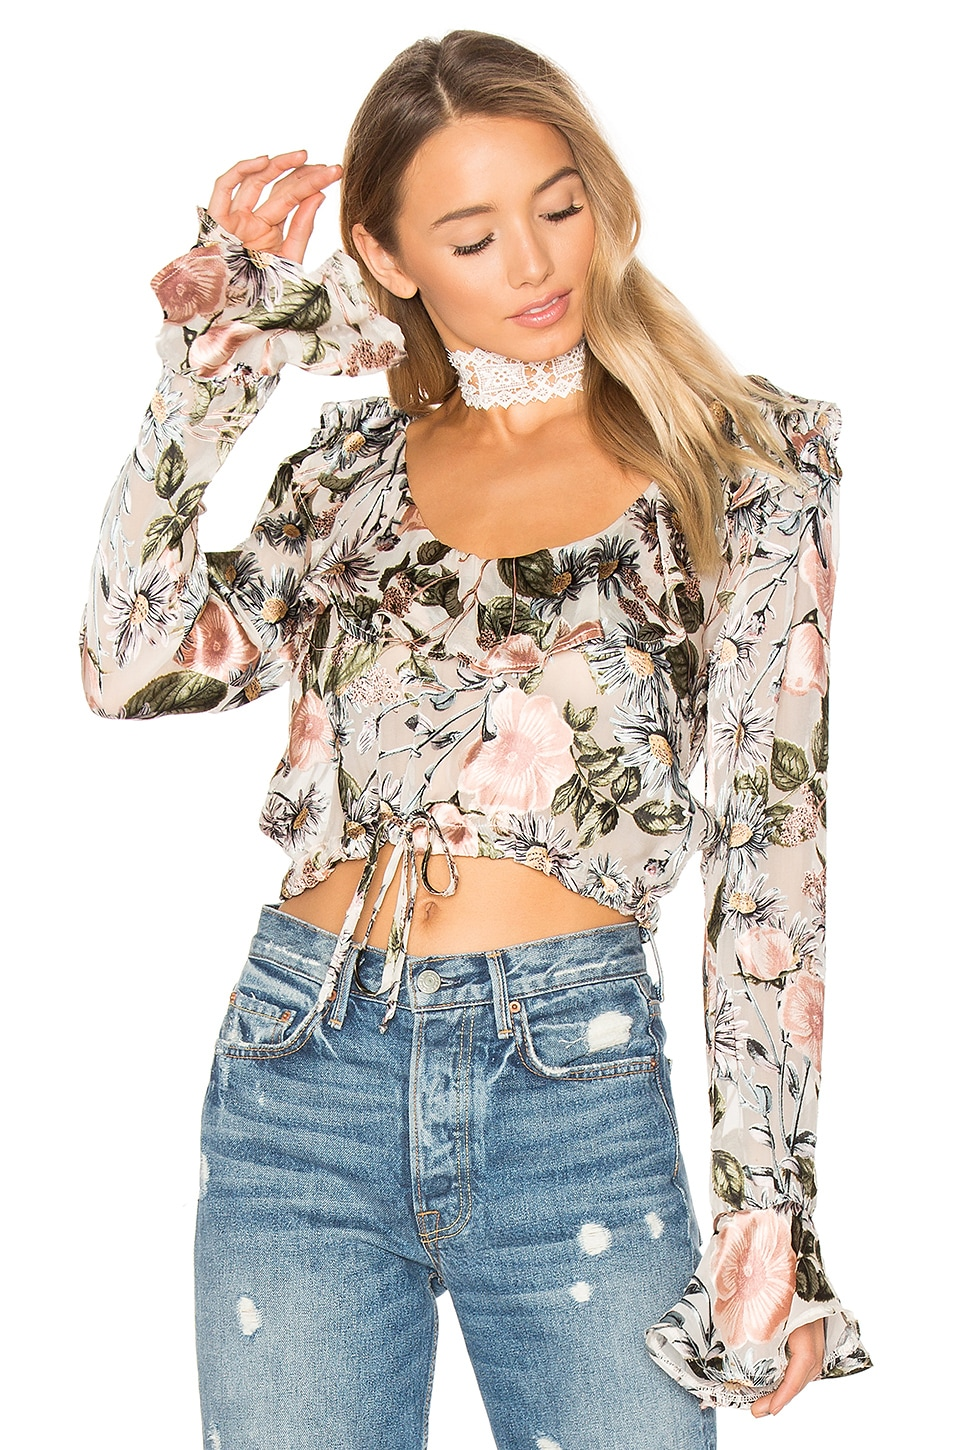 For Love & Lemons Luciana Ruffle Blouse in Ivory Floral